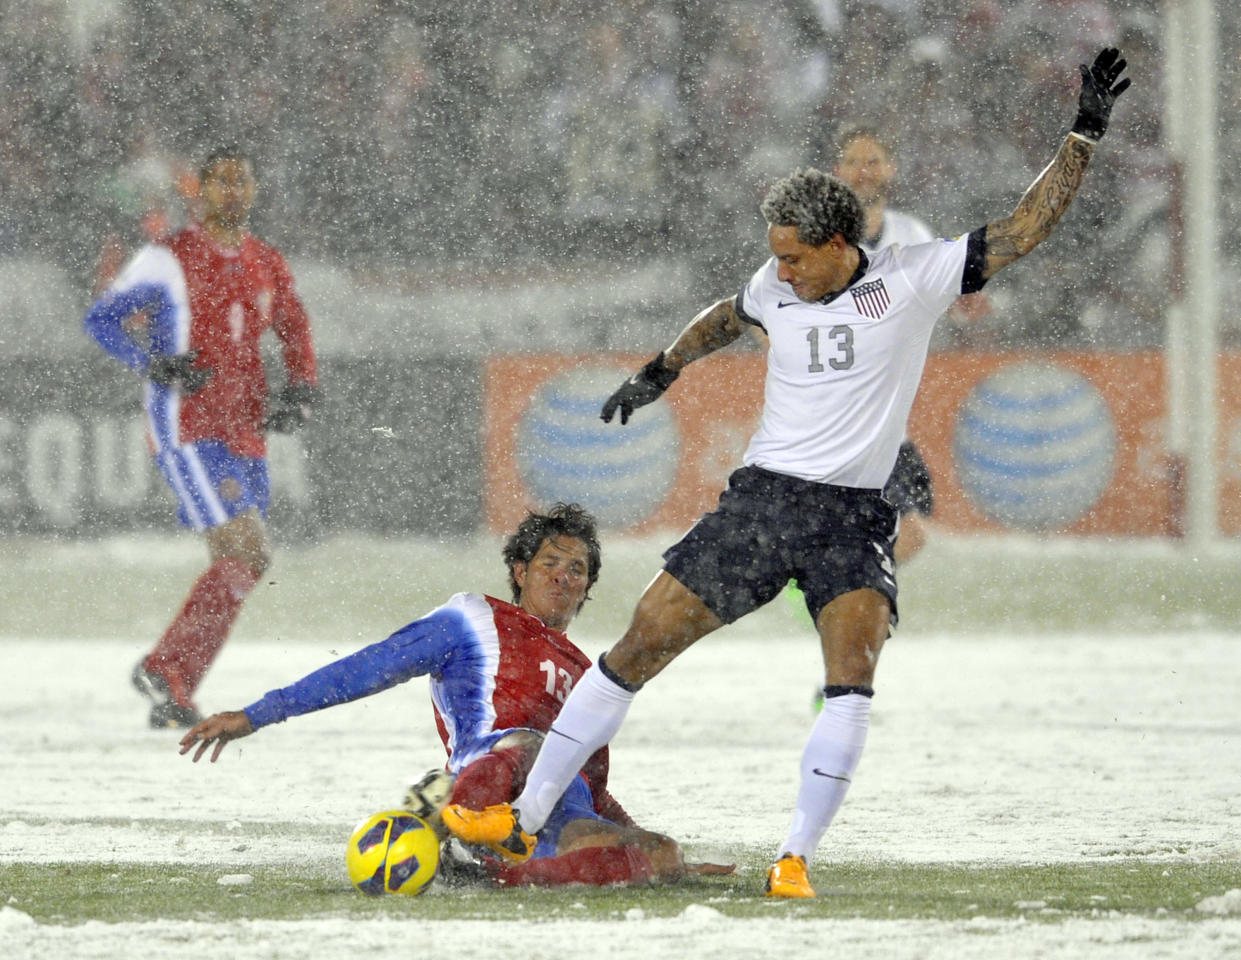 Costa Rica midfielder Ariel Rodgriguez, front left, tackles United States midfielder Jermaine Jones, right, during the first half of a World Cup qualifier soccer match in Commerce City, Colo., Friday, March 22, 2013. (AP Photo/Jack Dempsey)